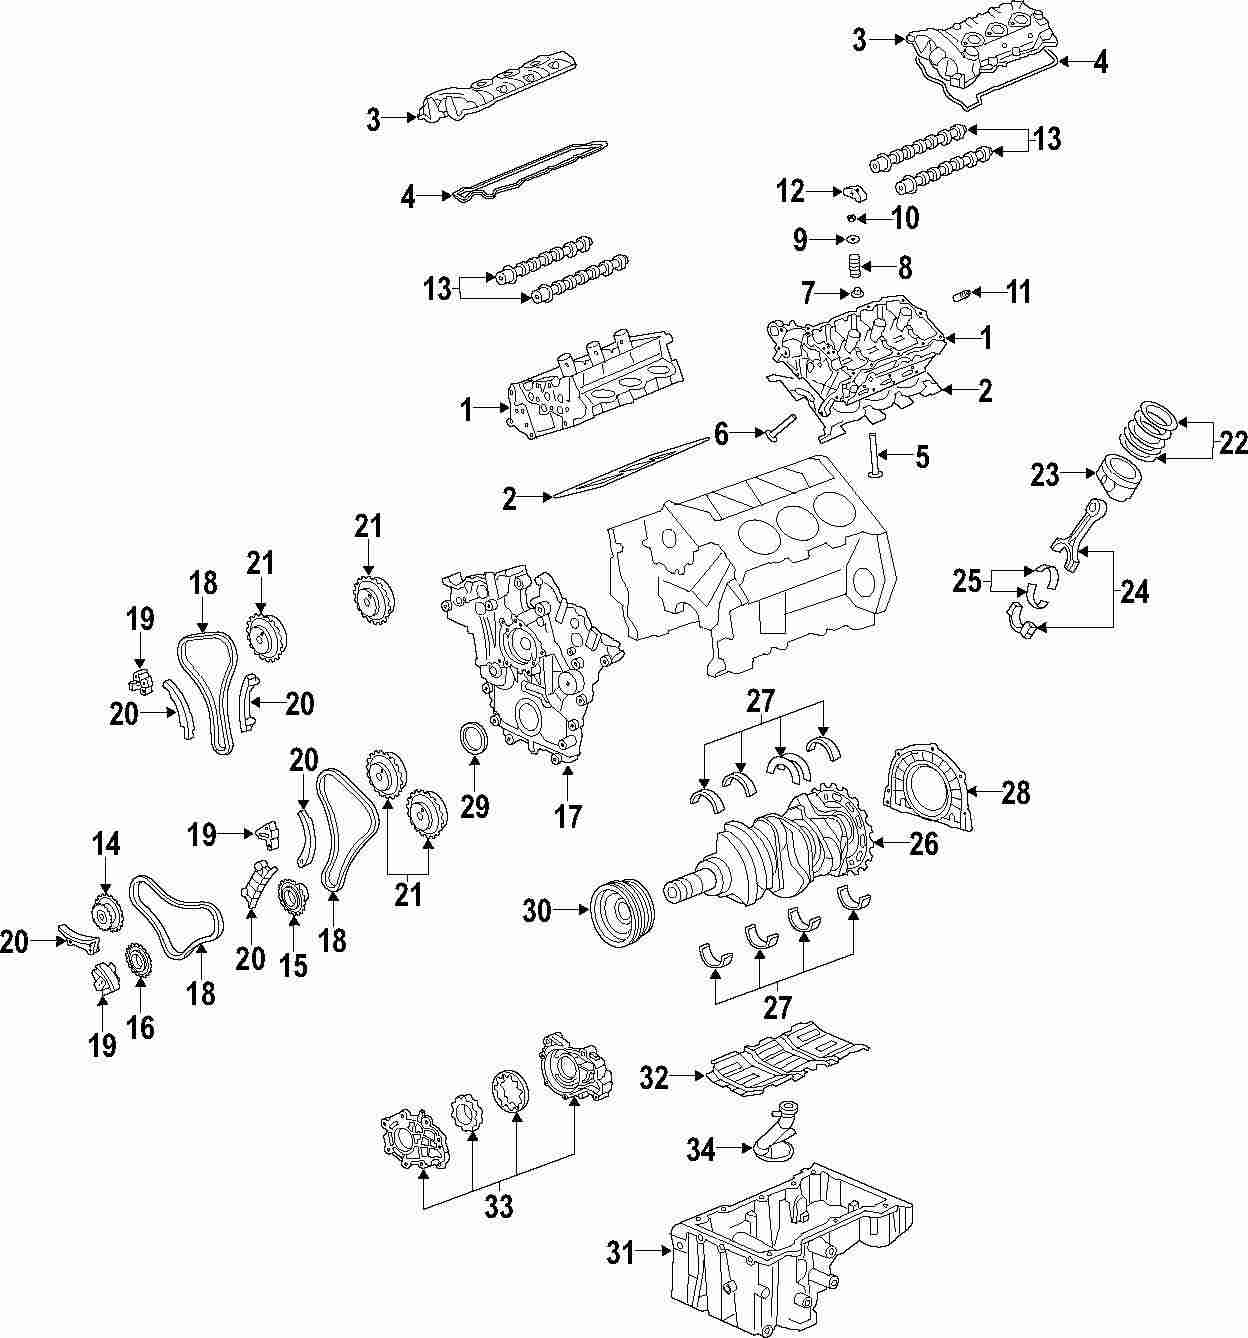 hight resolution of 2009 buick enclave engine diagram wiring library 2008 chevrolet impala engine diagram 2009 buick enclave engine